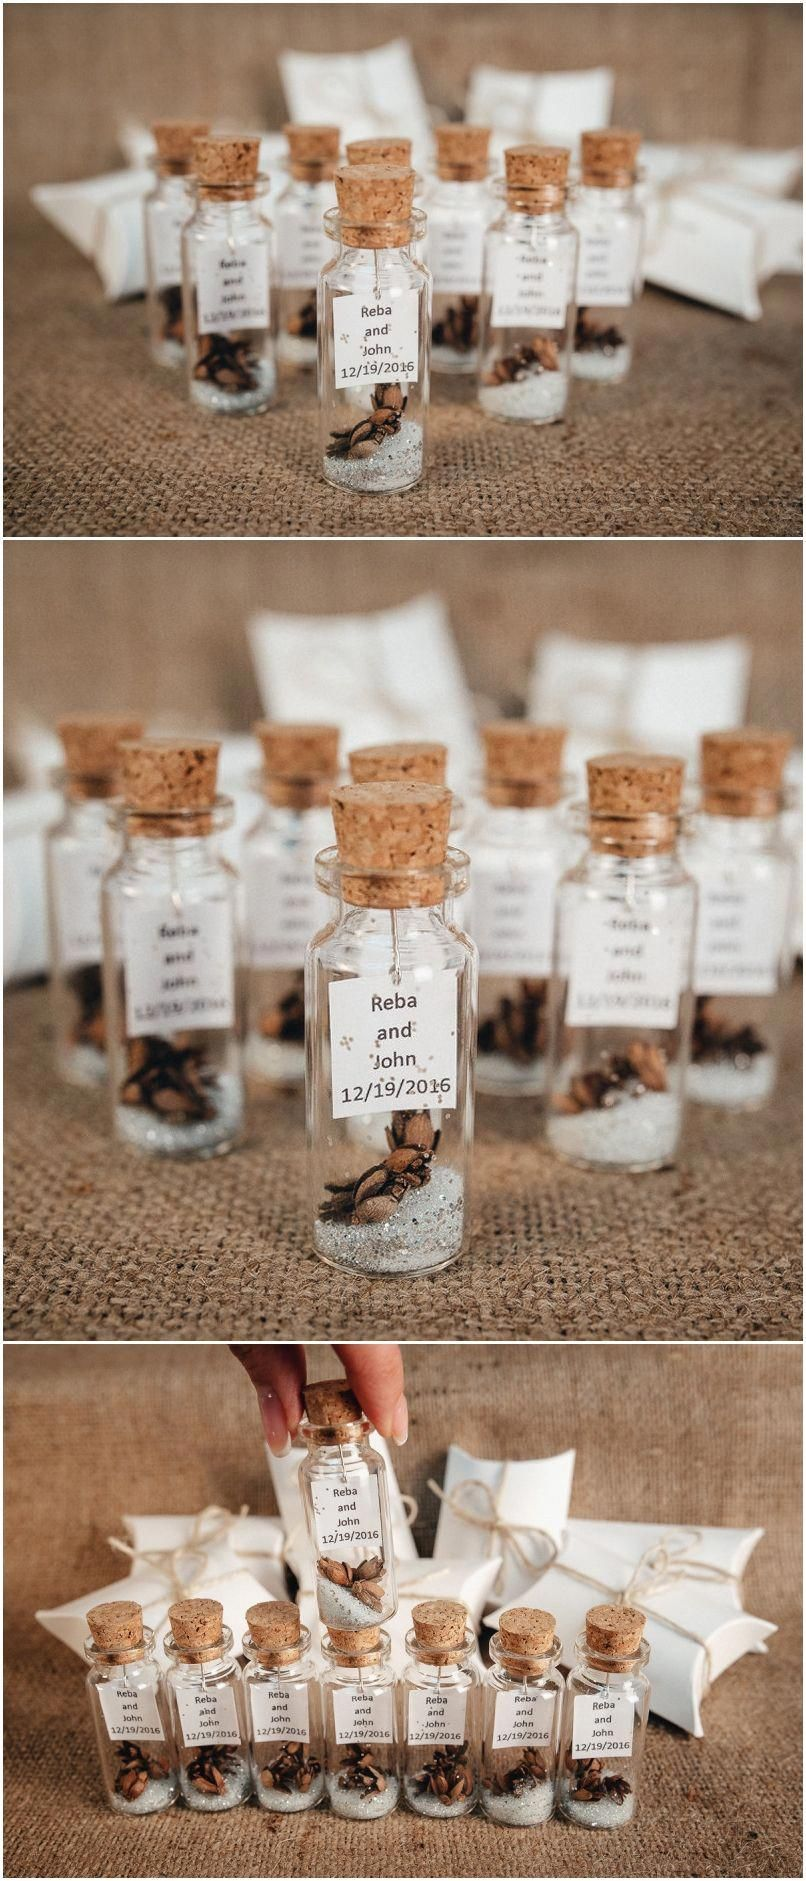 Cheap Wedding Favors Thank You Favors For Wedding Guests Inexpensive Wedding Favors For Wedding Favors Cheap Rustic Wedding Favors Homemade Wedding Favors